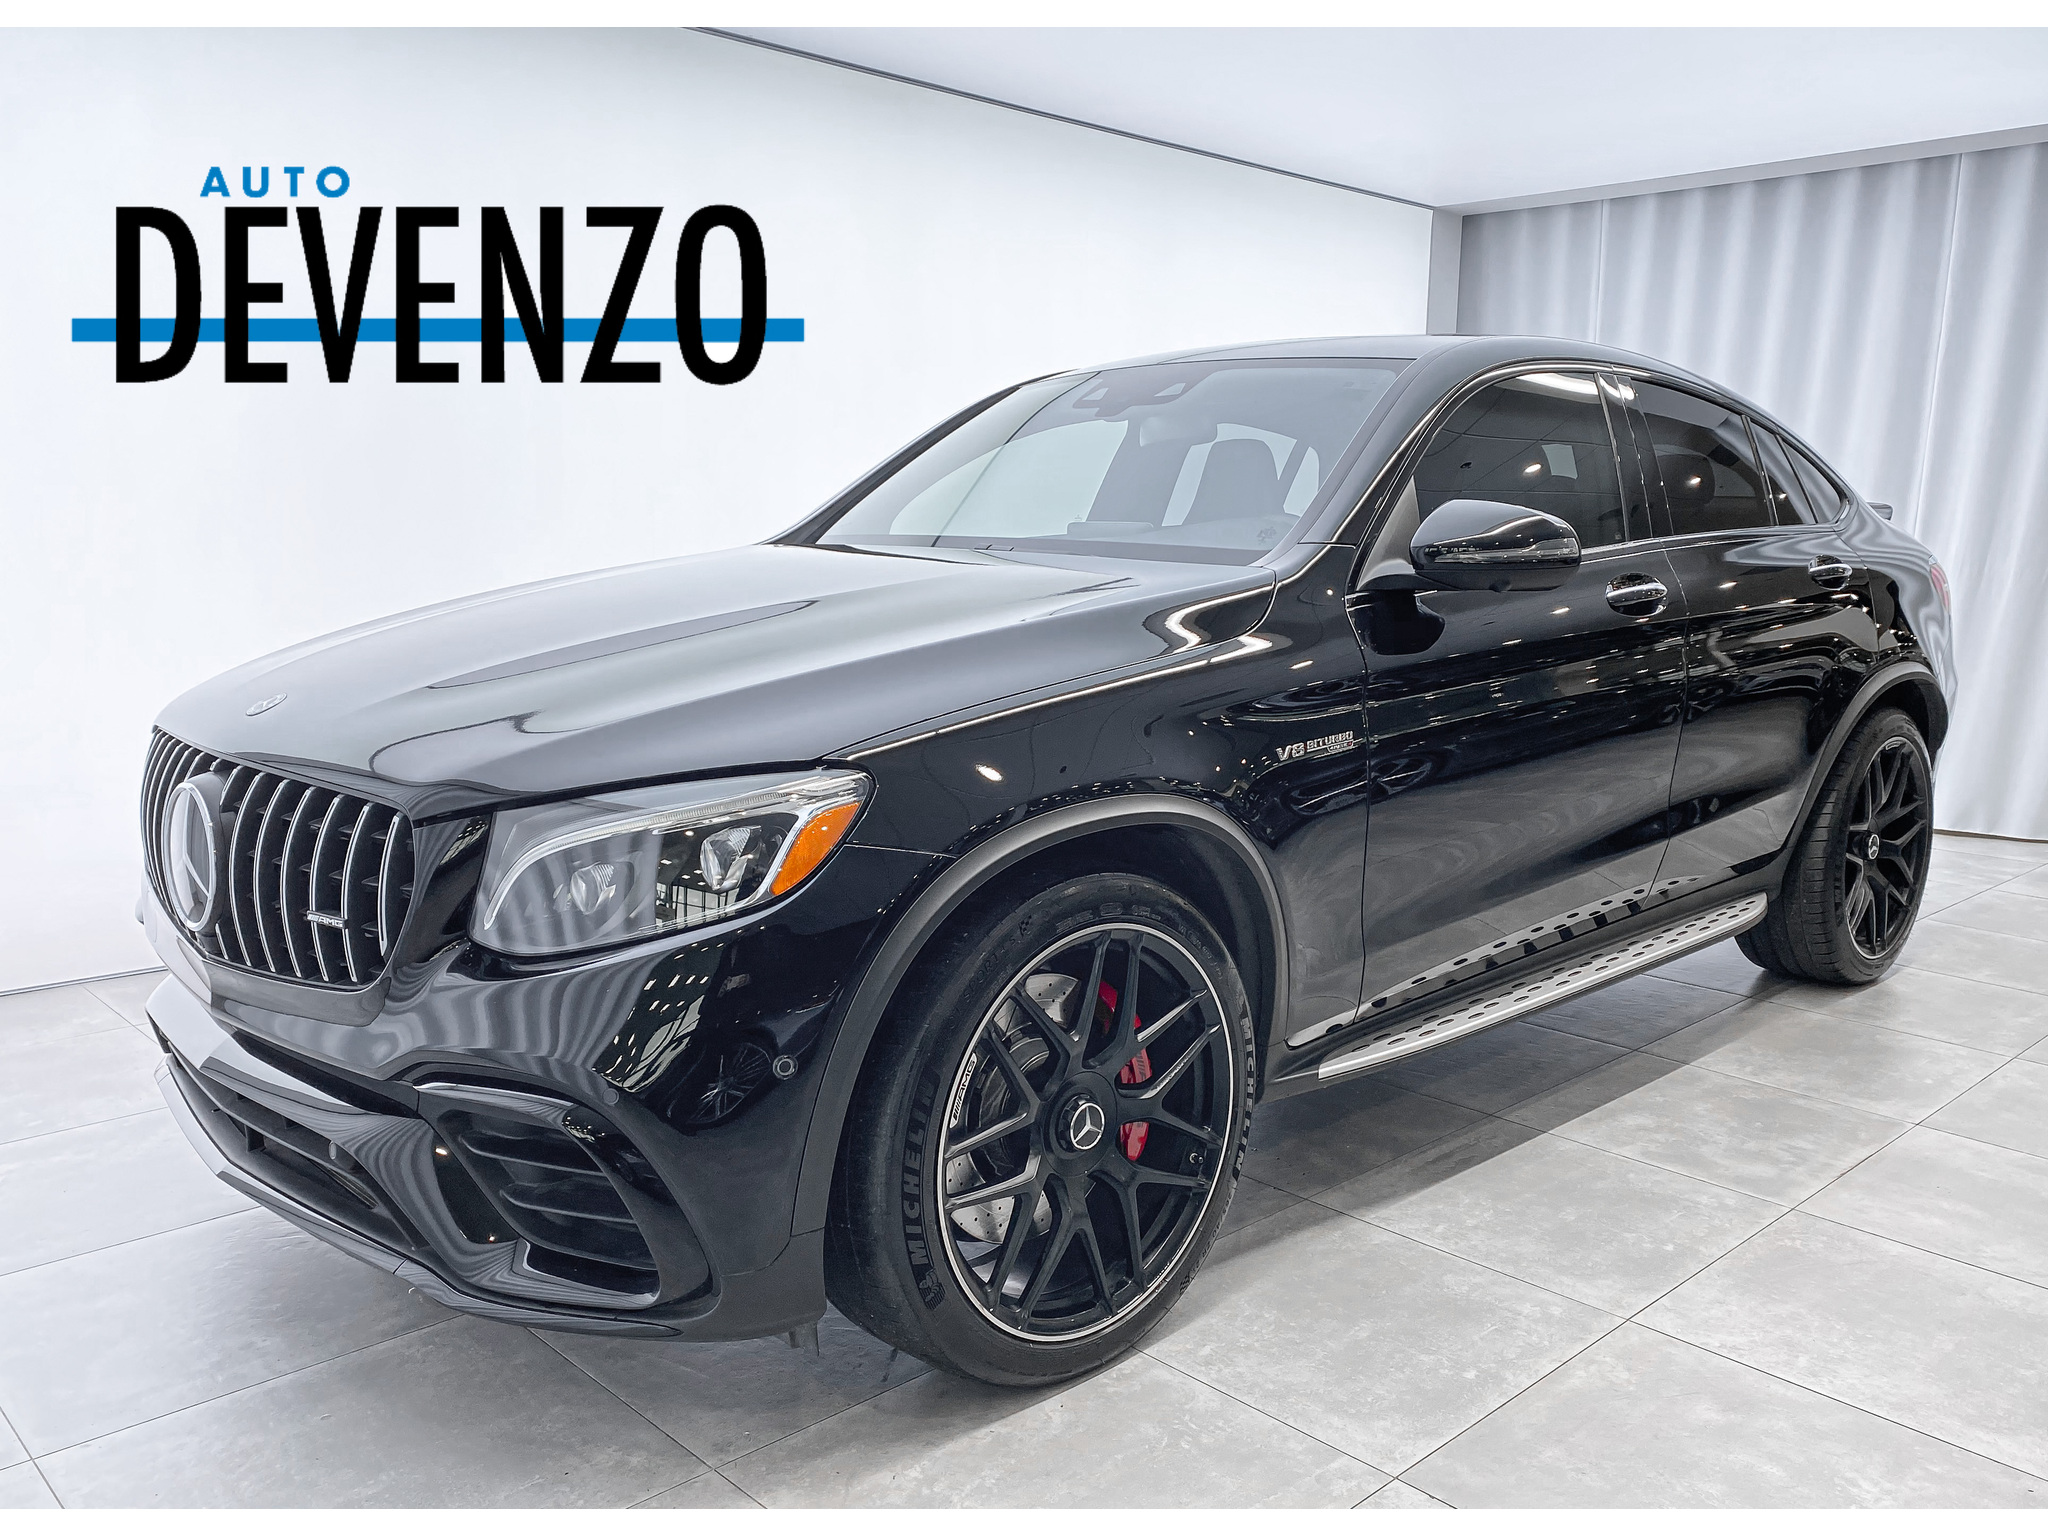 2019 Mercedes-Benz GLC AMG GLC 63 S 4MATIC+ Coupe V8 4.0 BITURBO 503HP complet